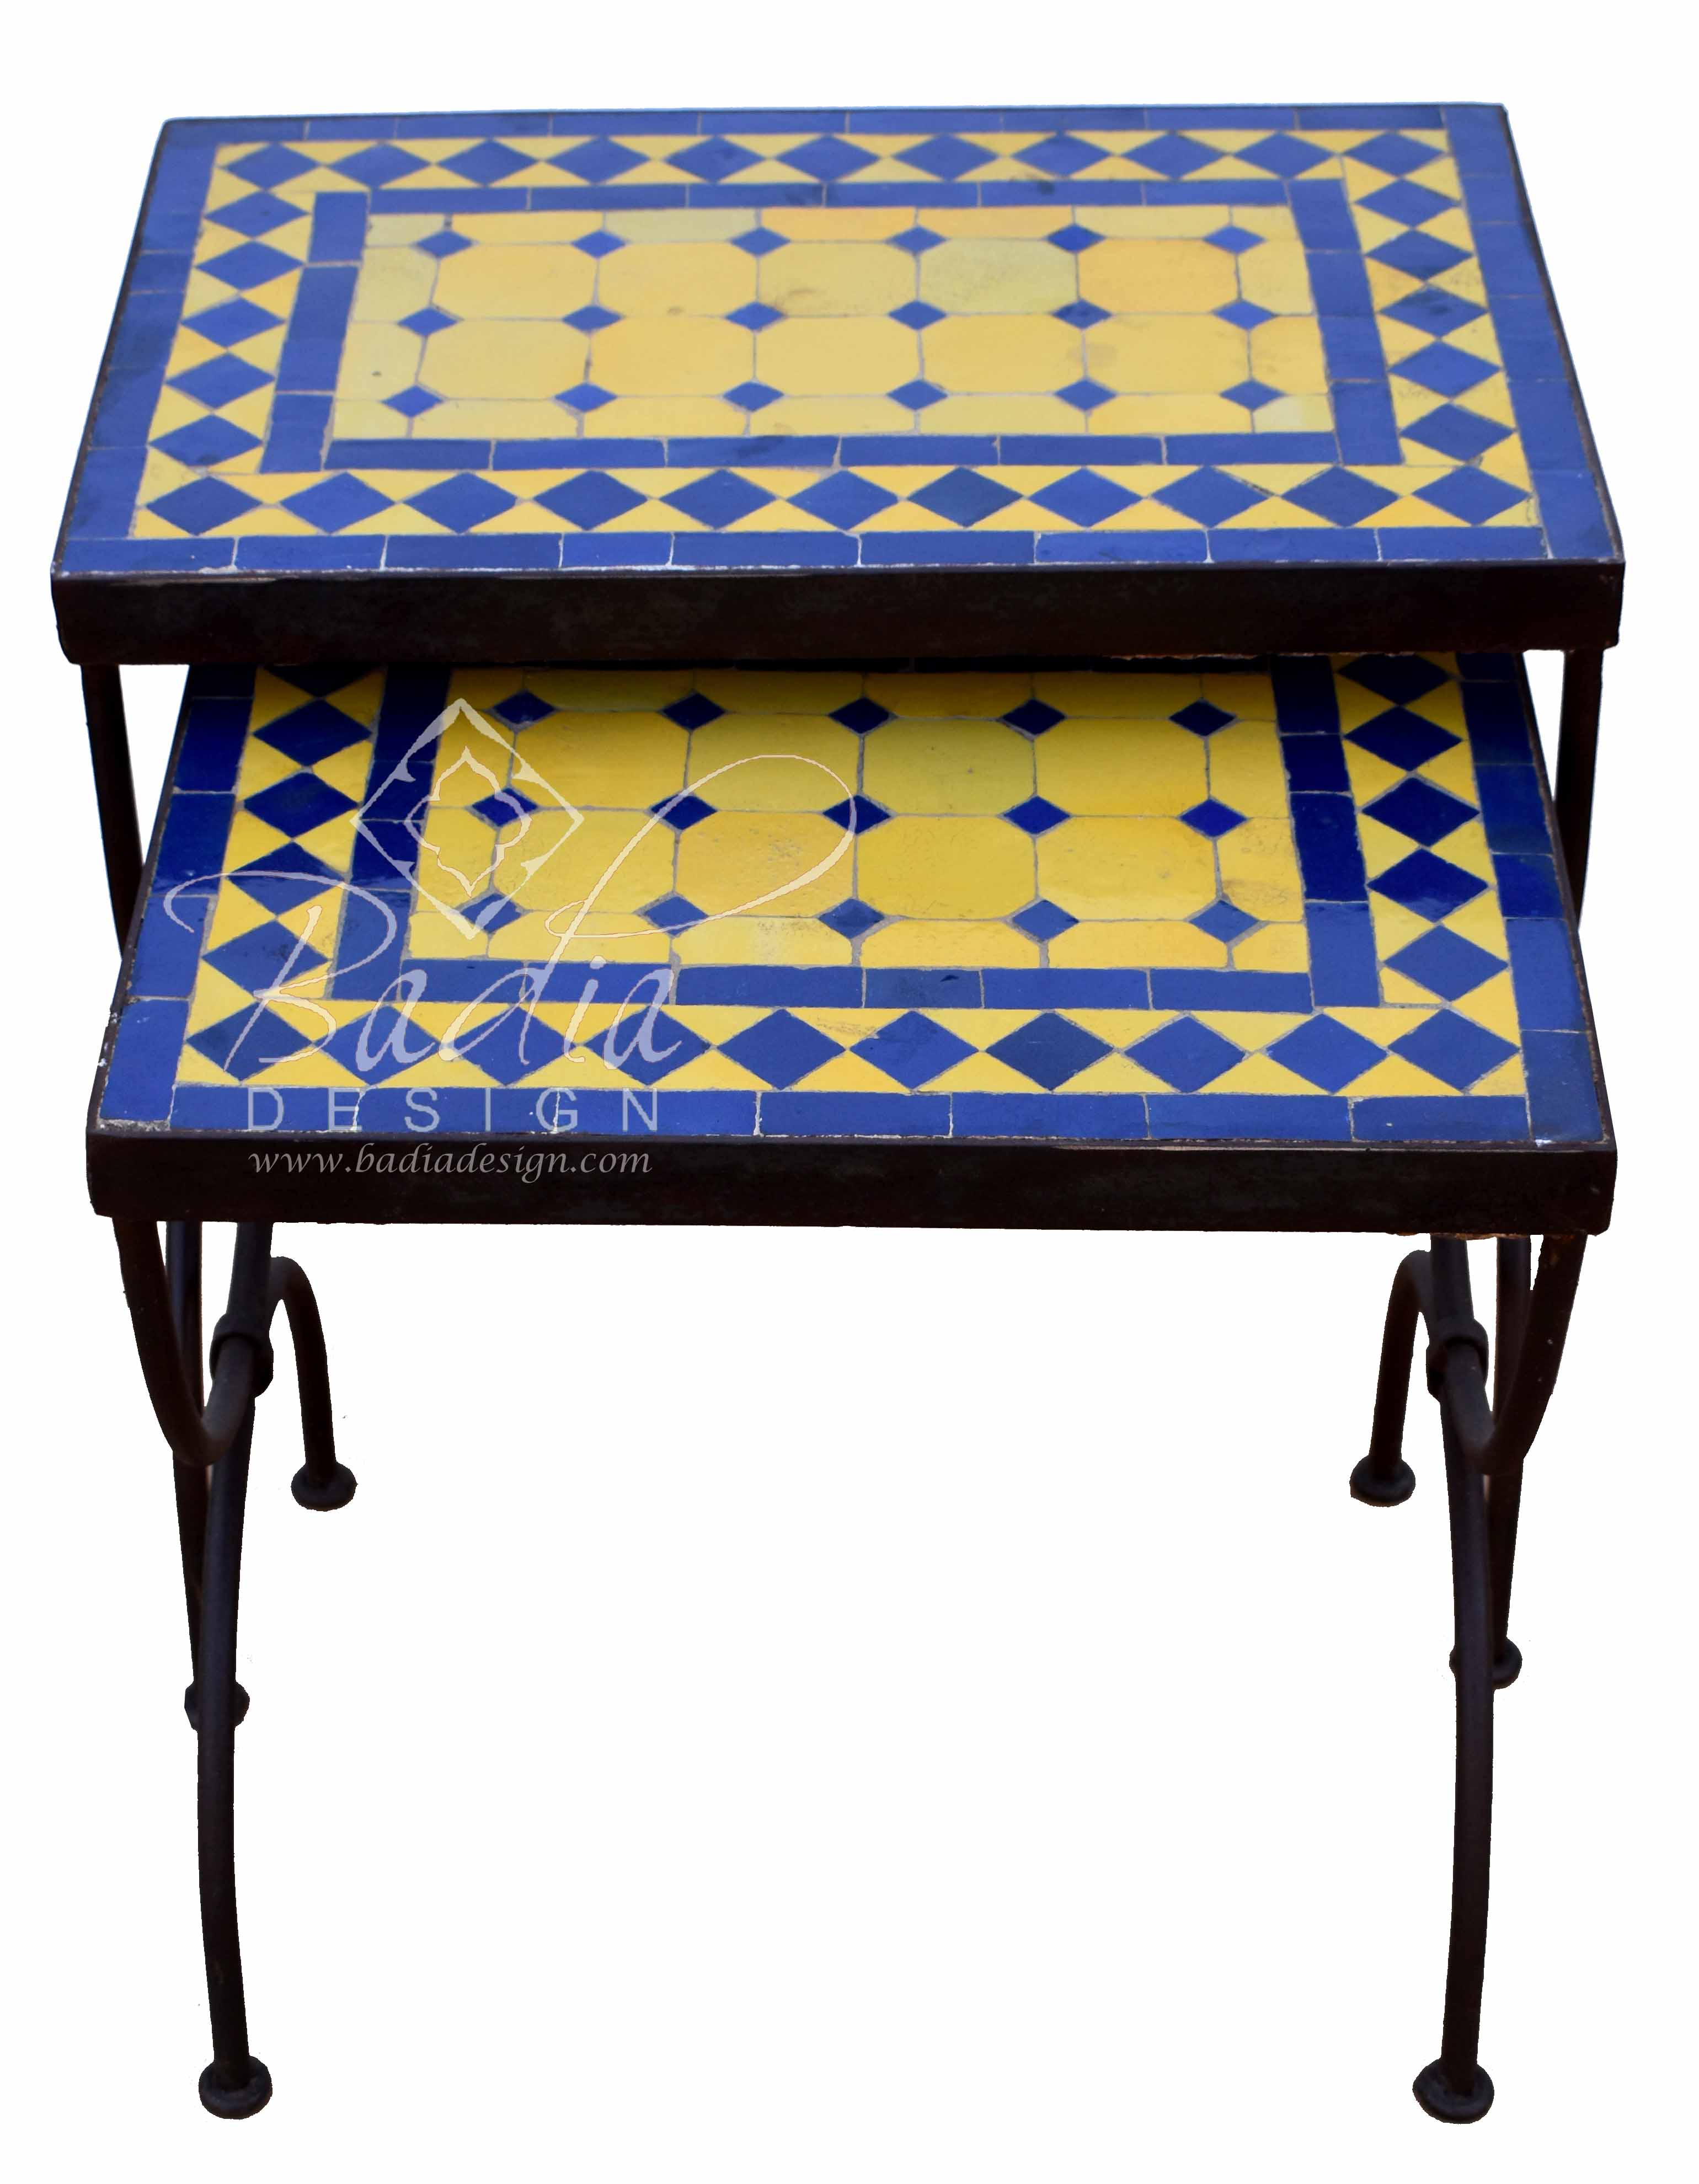 two-piece-moroccan-nesting-tile-tables-mt764.jpg